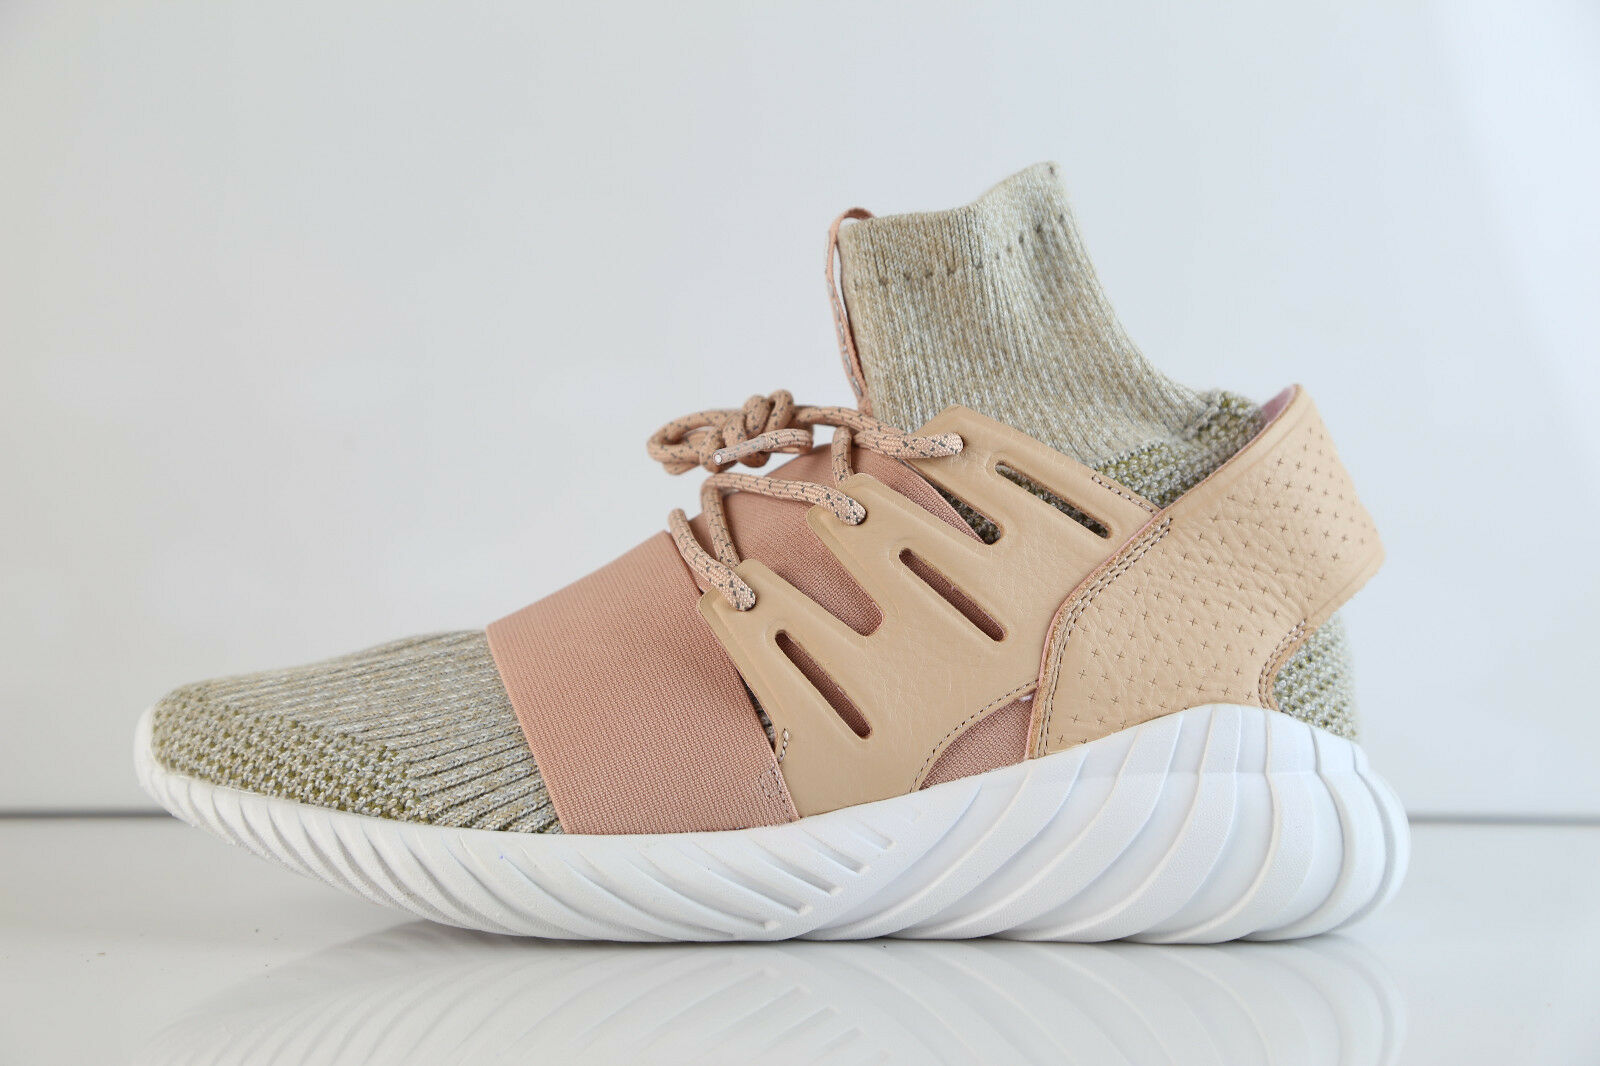 Adidas Tubular Doom PK PK PK Prime Knit St Pale Nude BB2390 8-11 boost originals 1 82415a